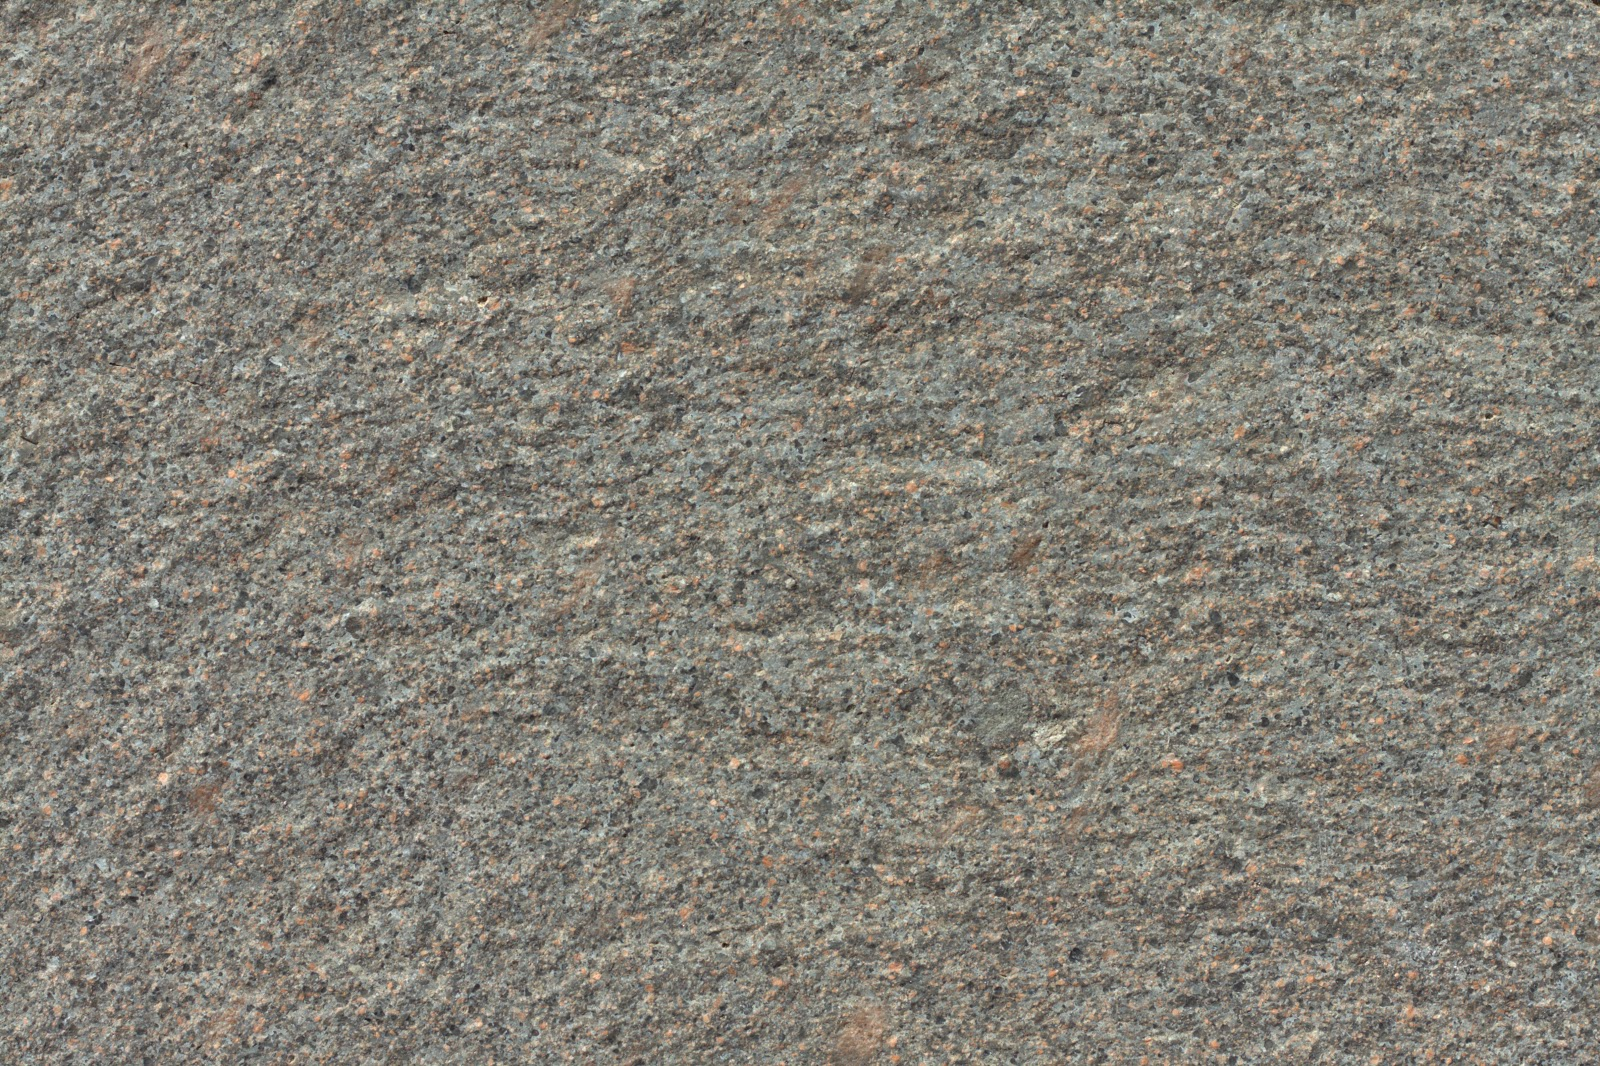 Rock surface detail texture 4770x3178